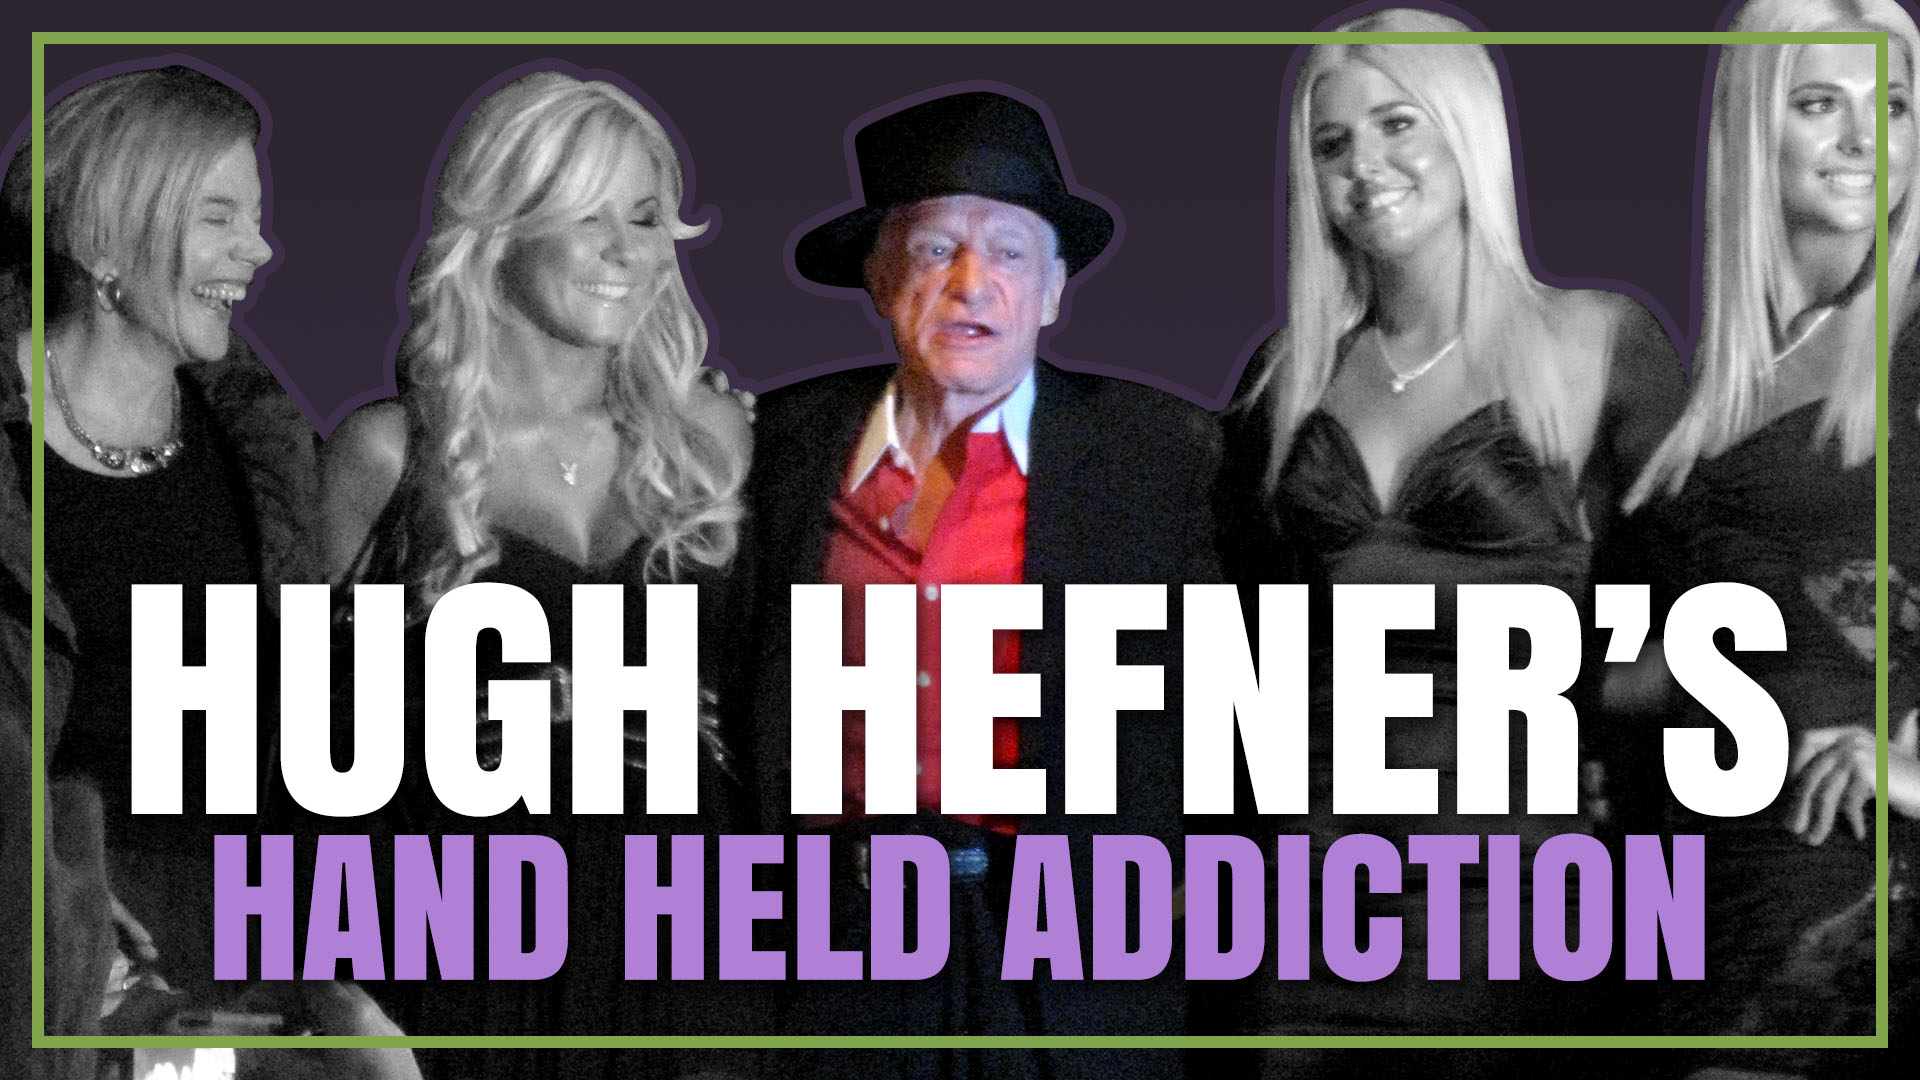 https://docconor.com/2019/09/27/hugh-hefners-hand-held-addiction/